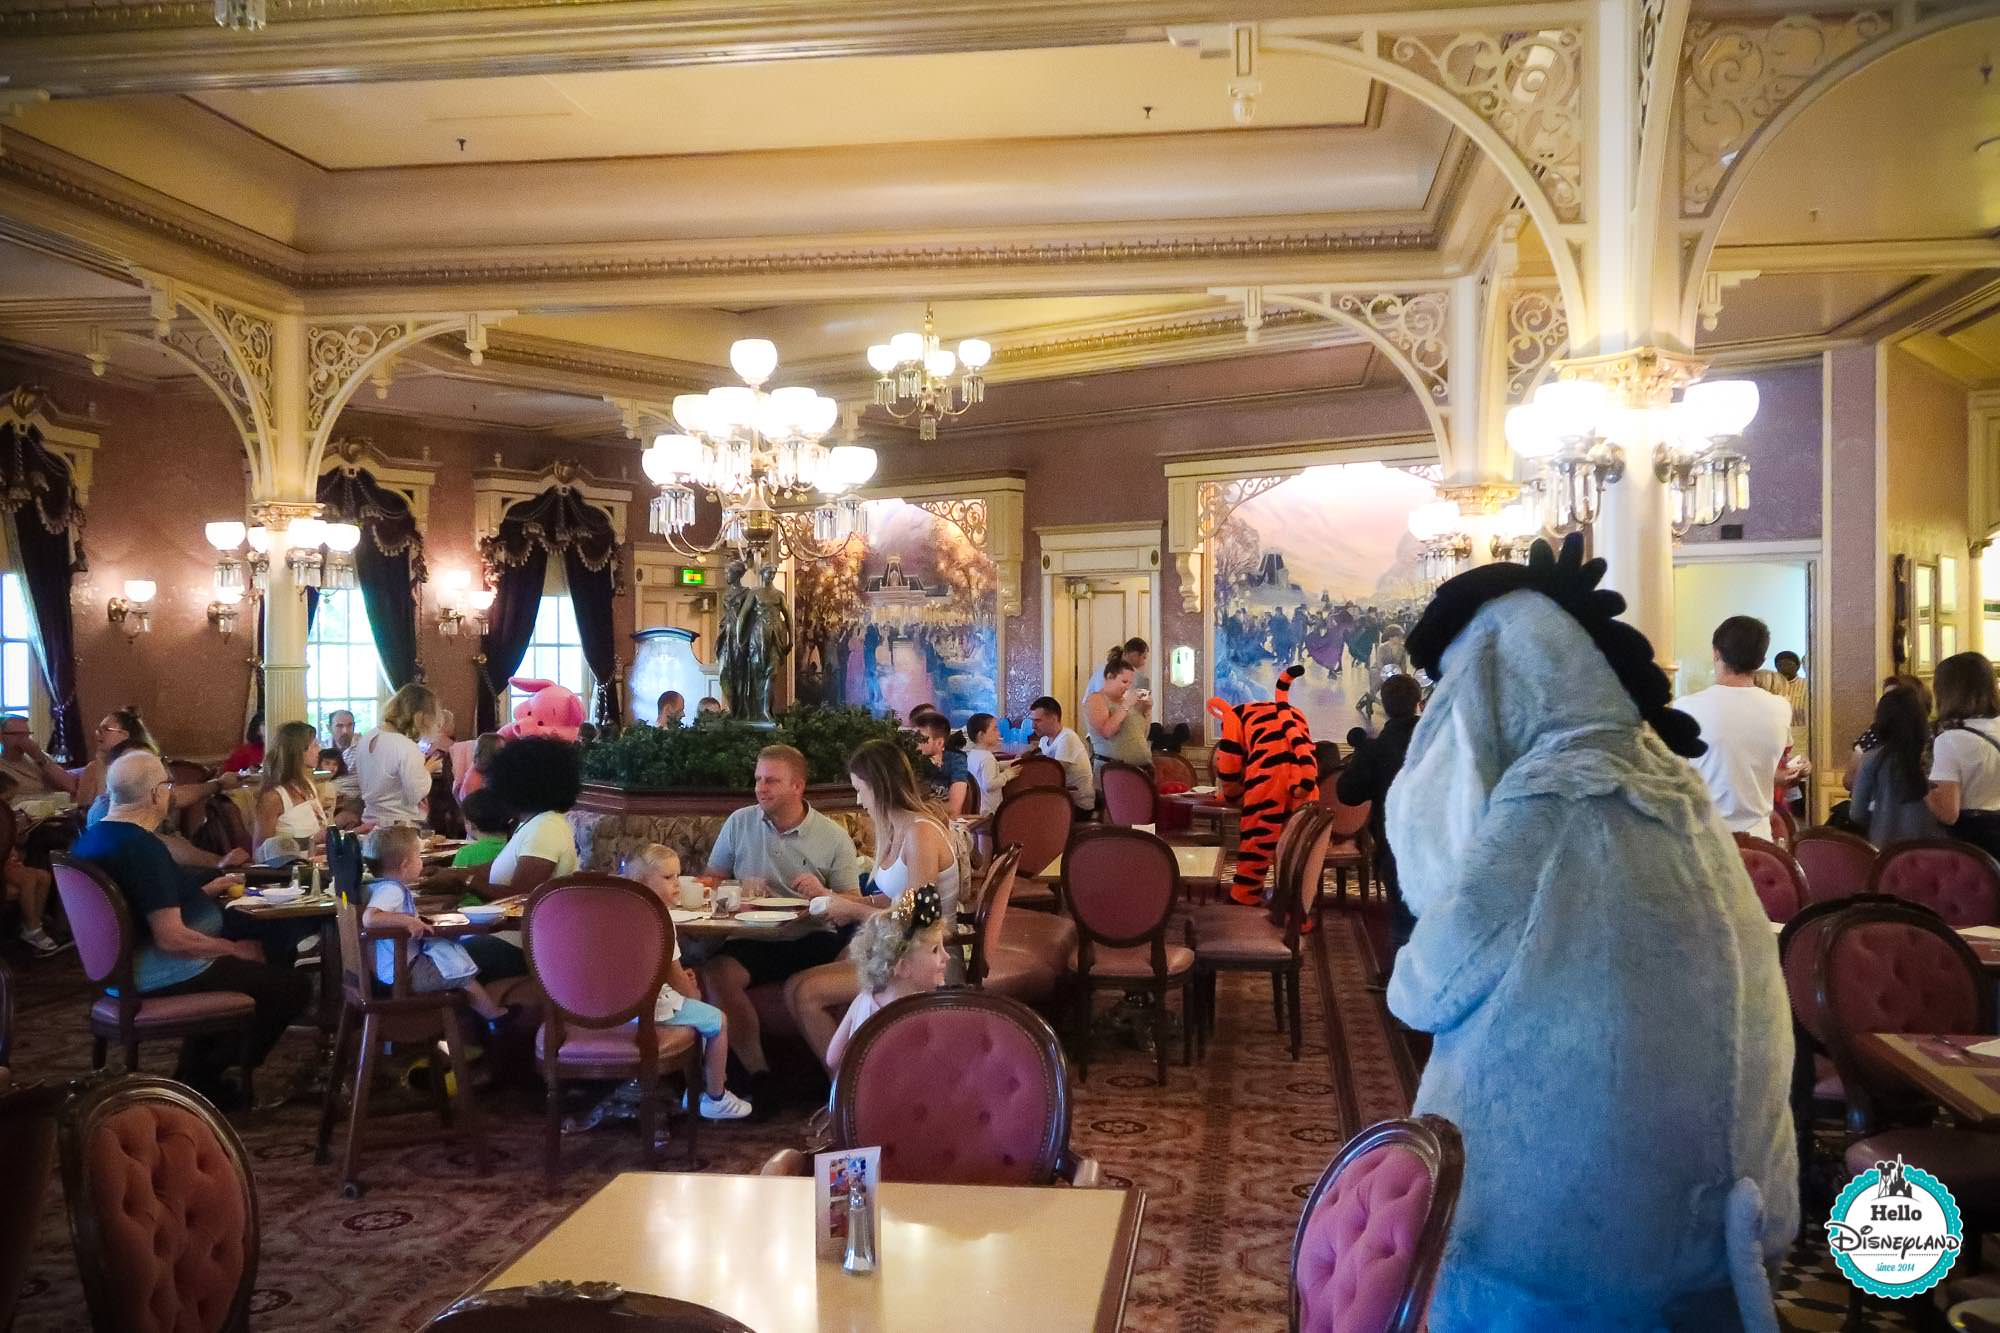 Hotel New York Disneyland Restaurant